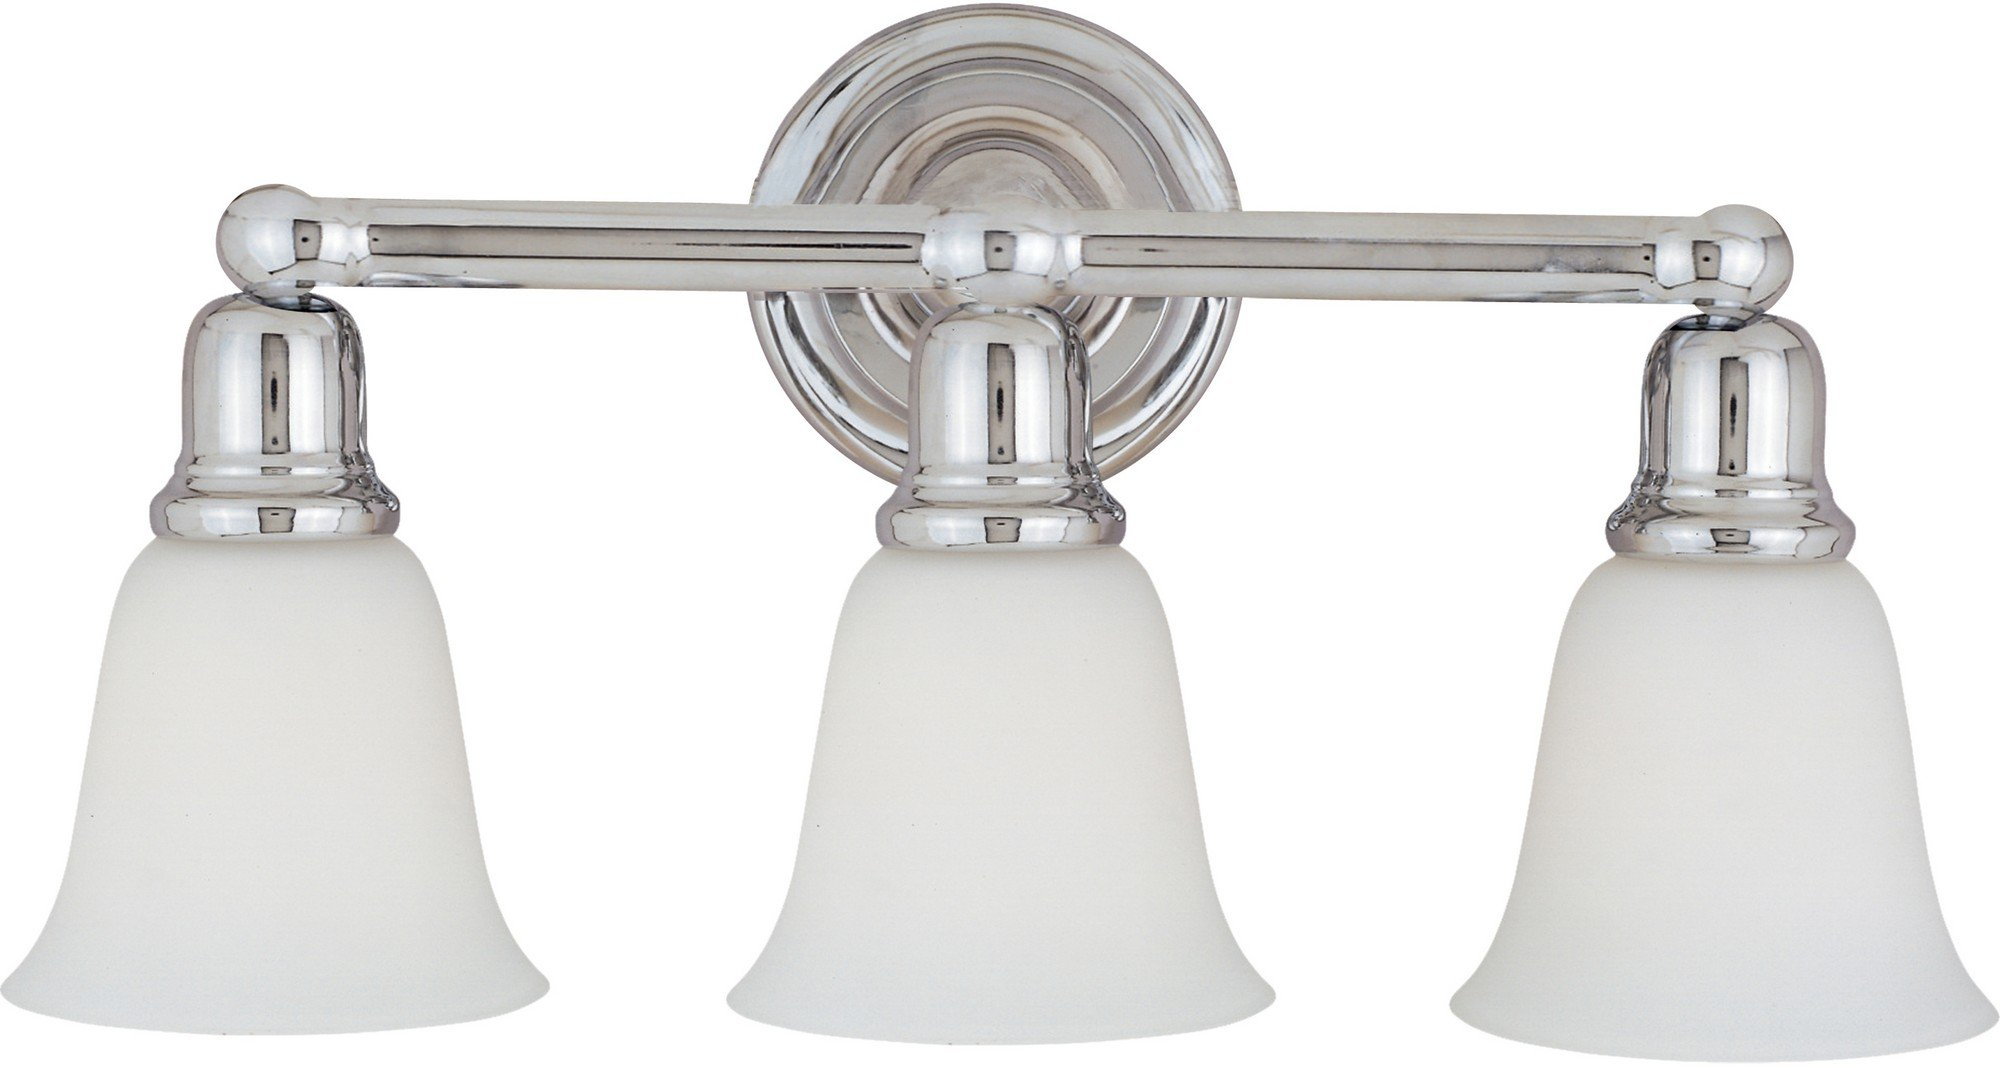 Maxim 11088WTPC Bel Air 3-Light Bath Vanity, Polished Chrome Finish, White Glass, MB Incandescent Incandescent Bulb , 60W Max., Dry Safety Rating, Standard Dimmable, Metal Shade Material, Rated Lumens